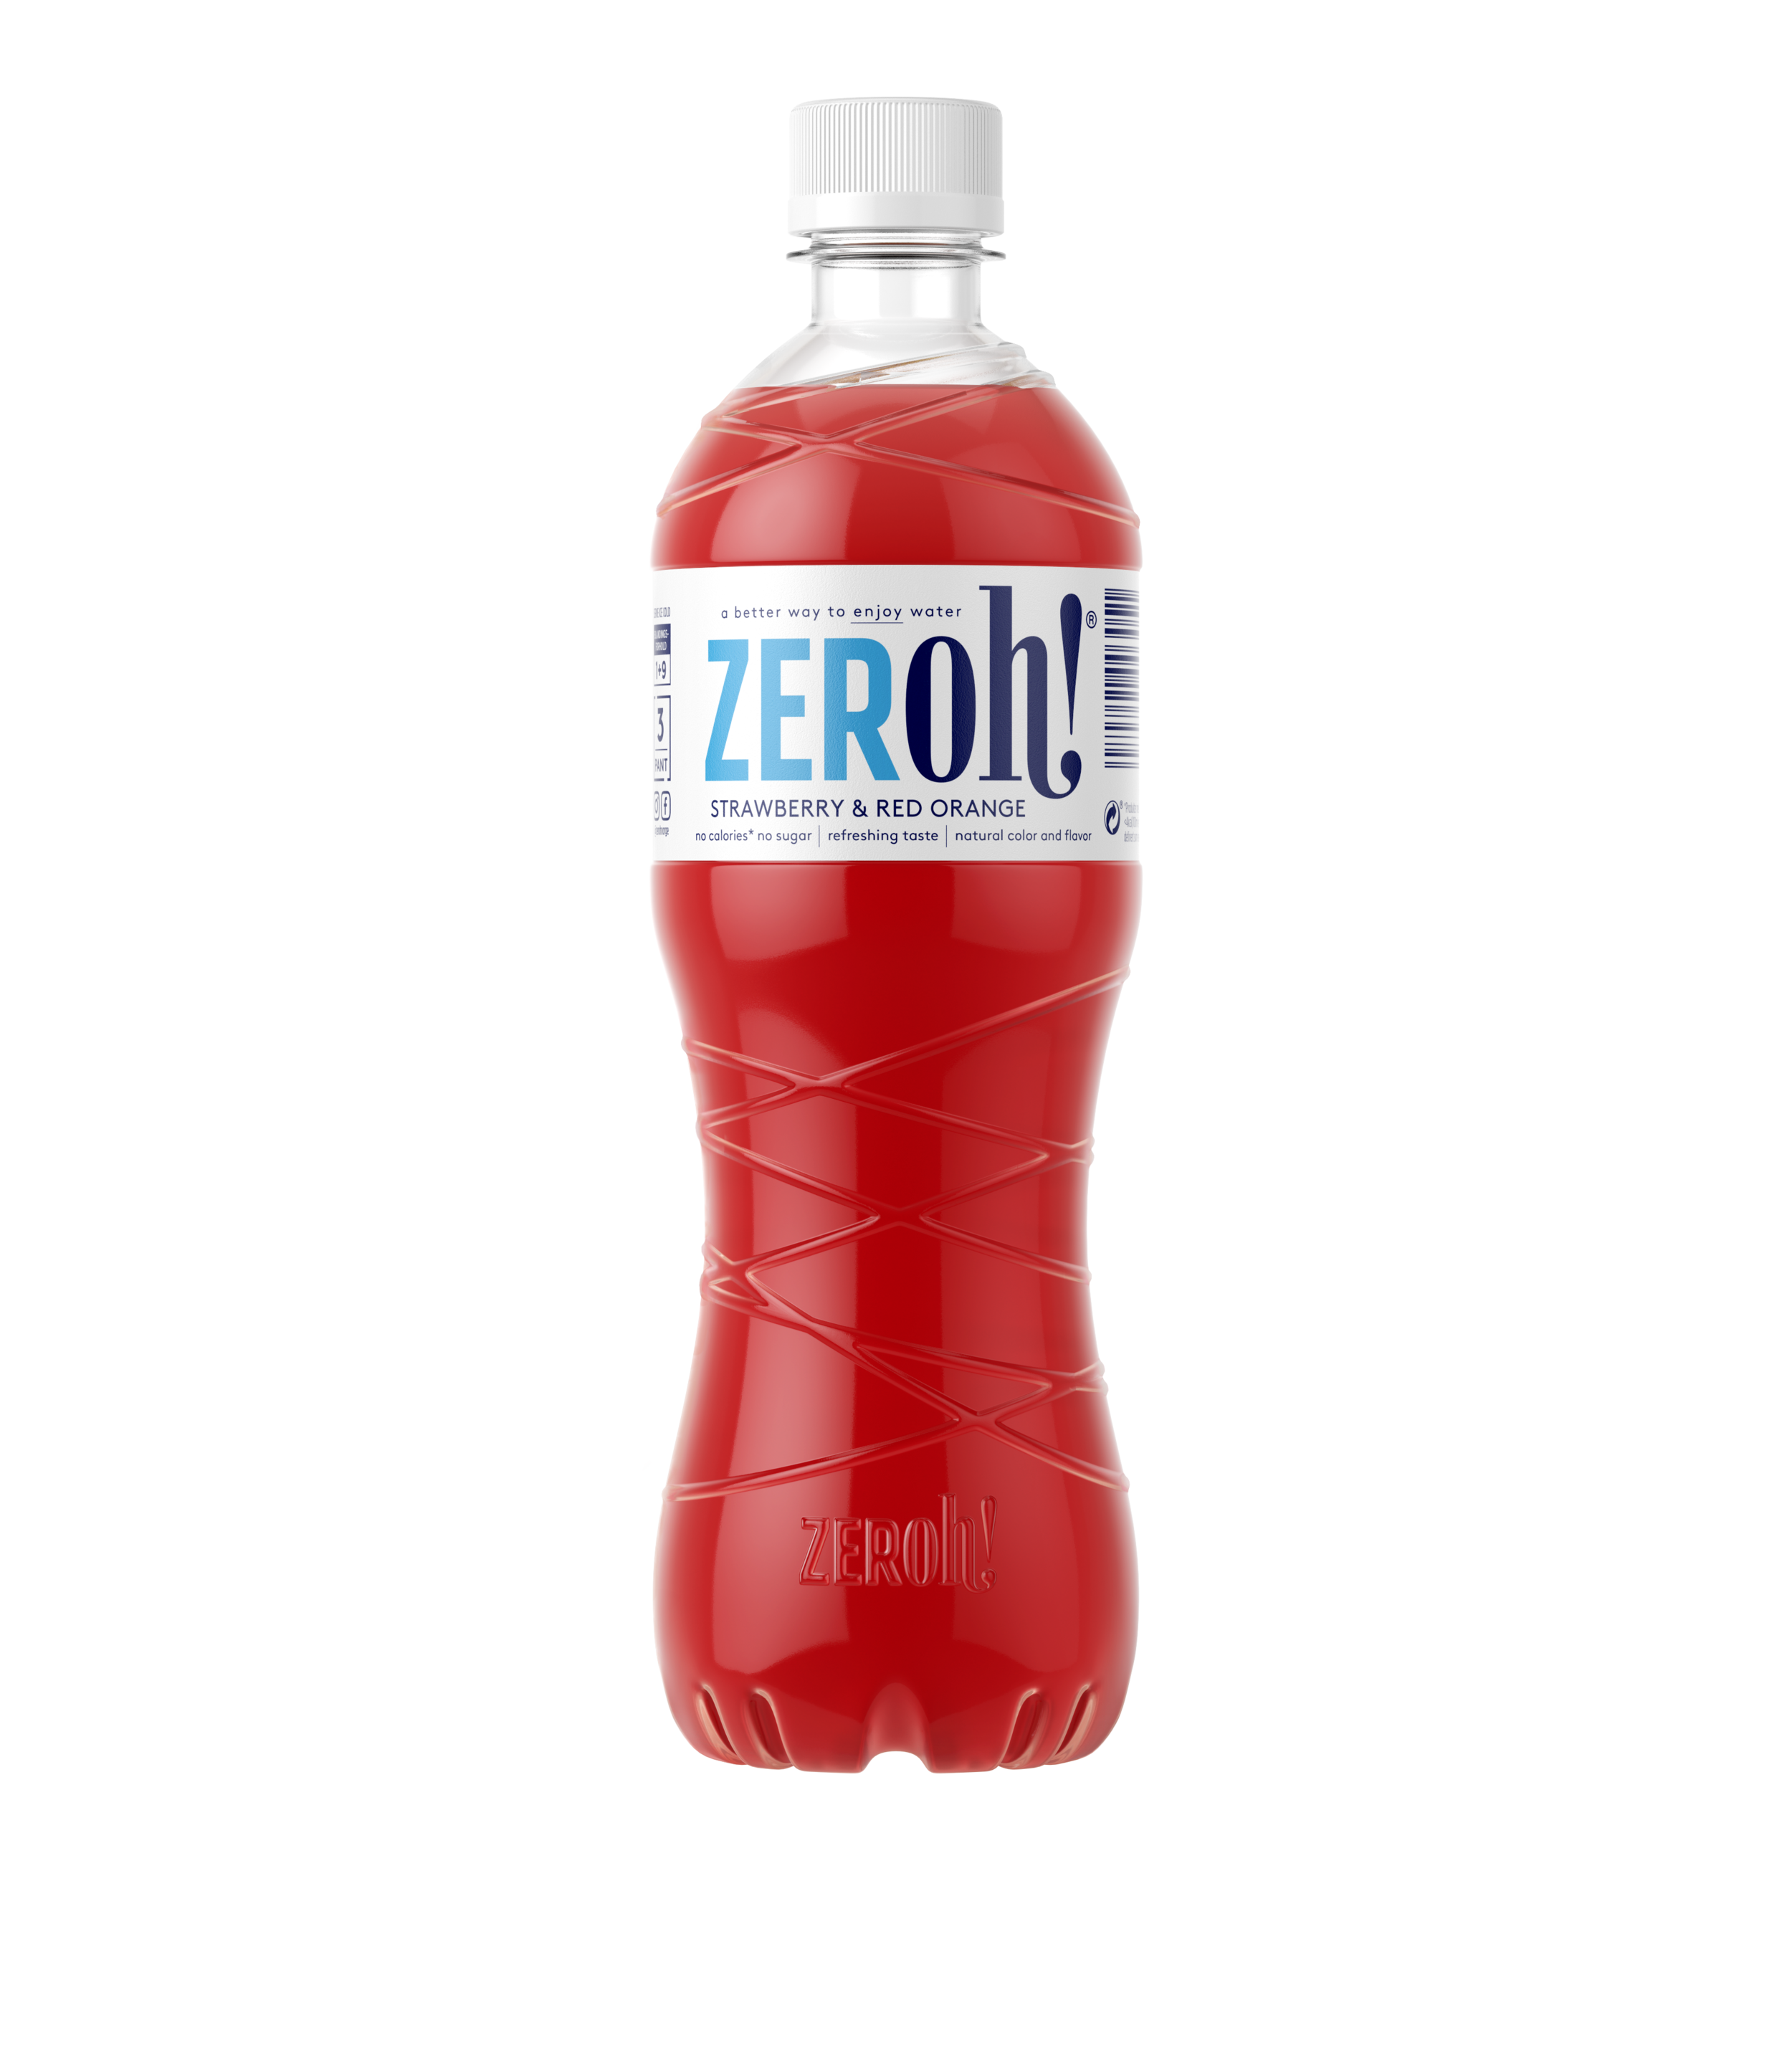 ZERoh! Strawberry & Red Orange 2019 3D transparent.png